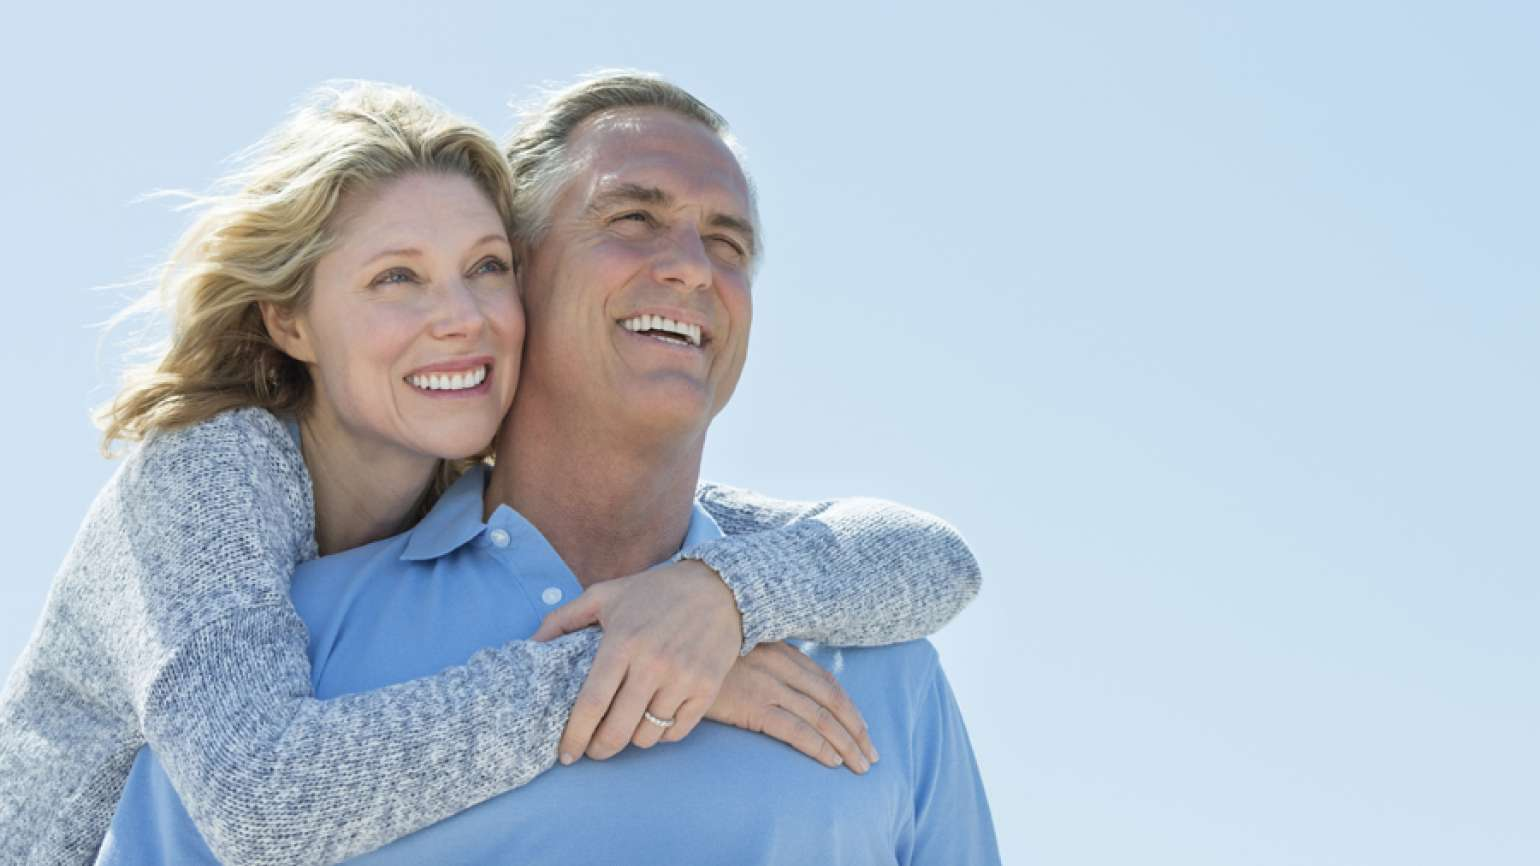 3 Easy Ways to Fall in Love with Your Spouse Again | Guideposts